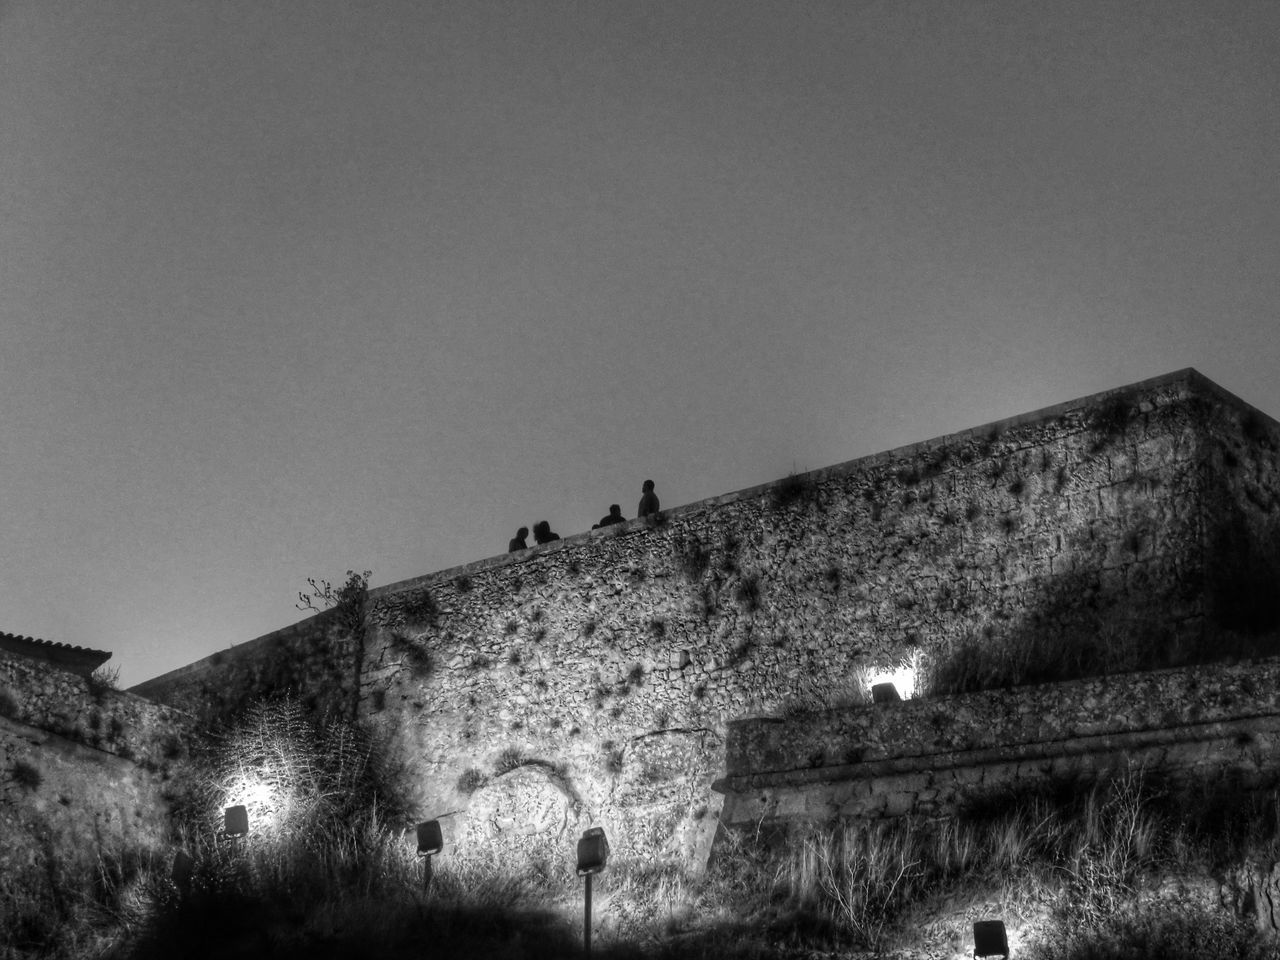 Architecture Black & White Building Exterior Built Structure Castle Castle Walls Clear Sky Damaged Dark Day Group Of People High Section Incidental People Low Angle View Monochrome Photography Night Sky Outdoors Overnight Success Peaceful Sky Solitude Tranquil Scene Tranquility Unrecognizable Person Weathered